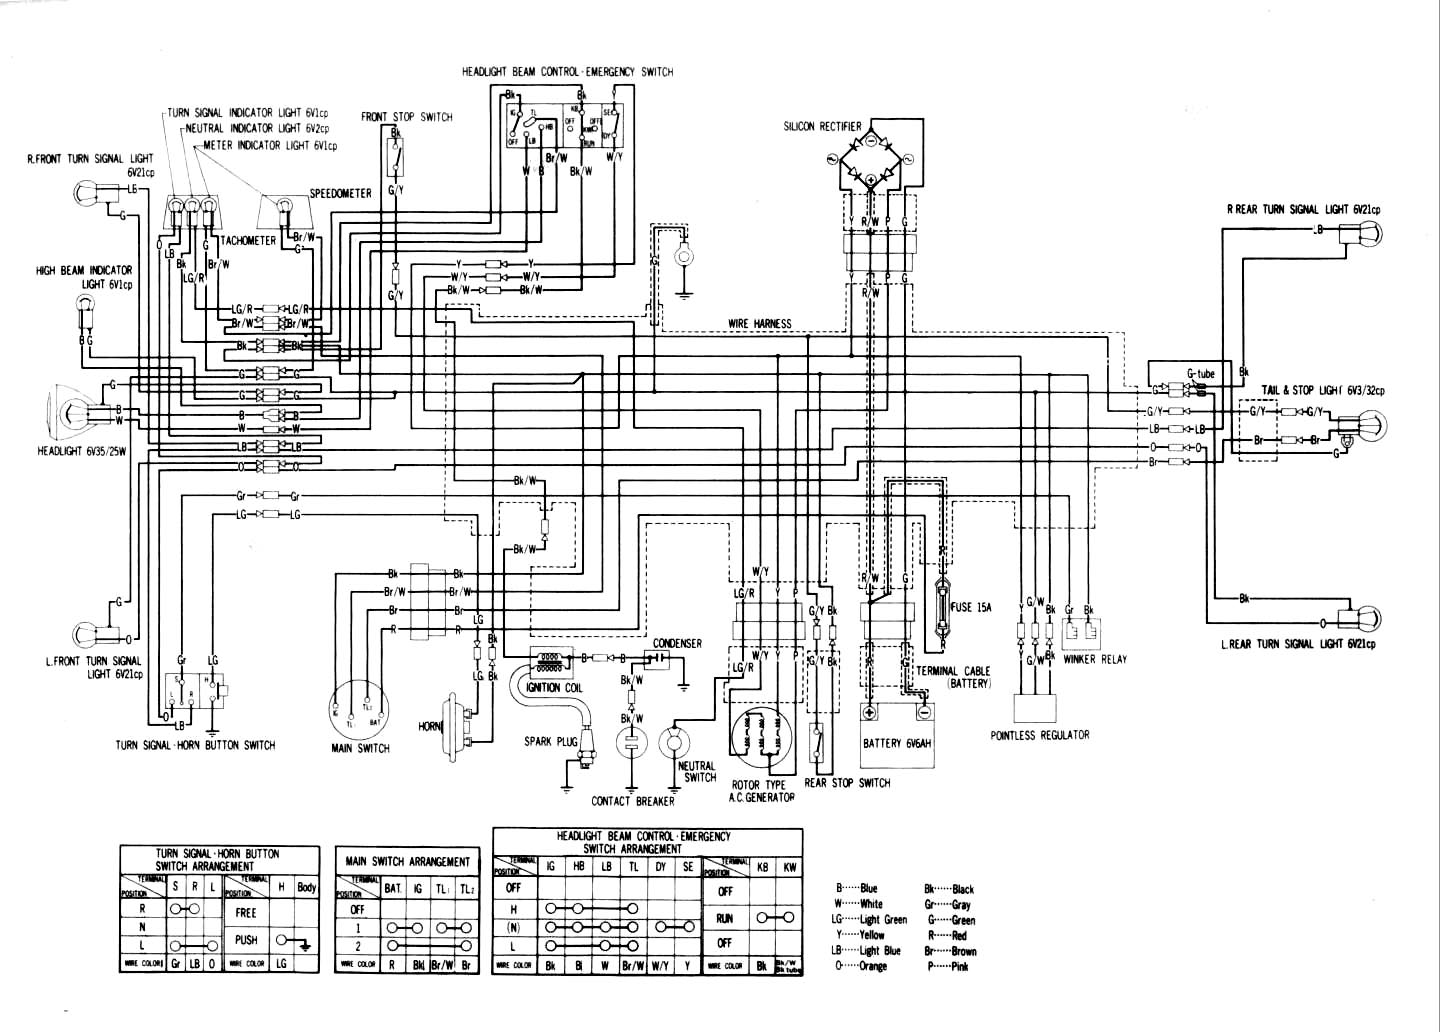 xl175 wiring diagrams 1983 honda shadow 750 wiring diagram at soozxer.org